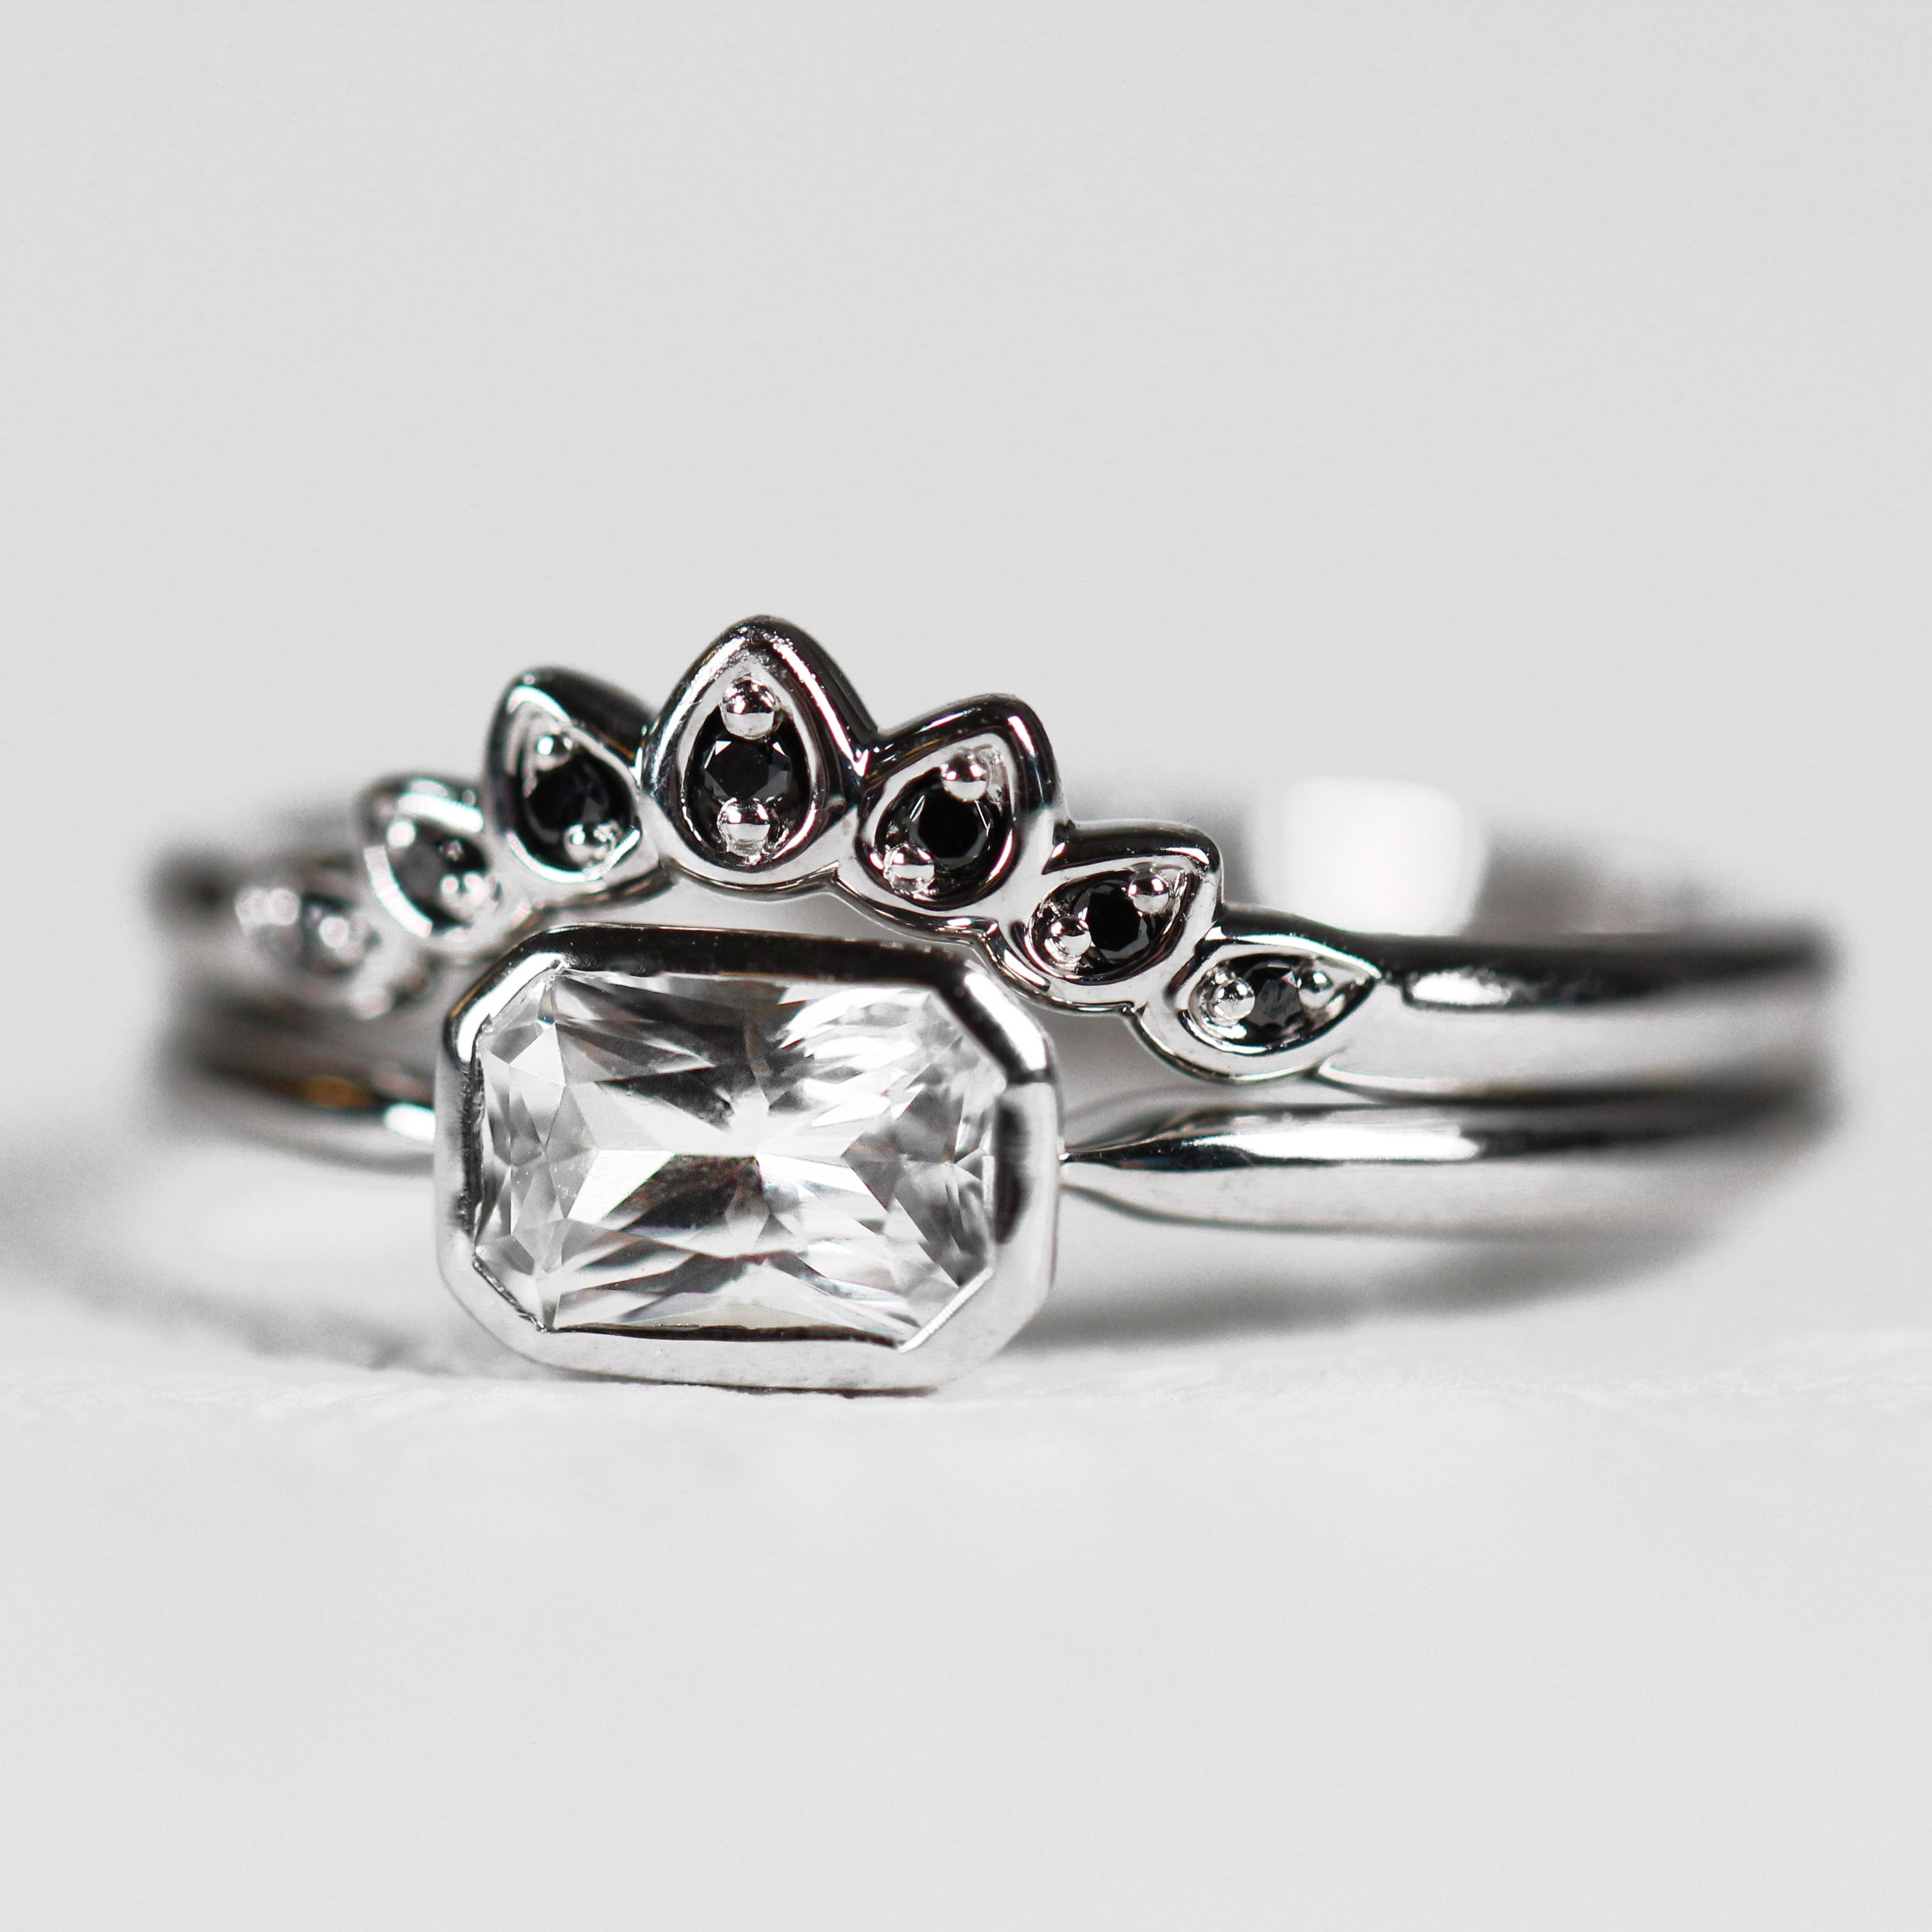 Fauna - Curved antique style diamond band